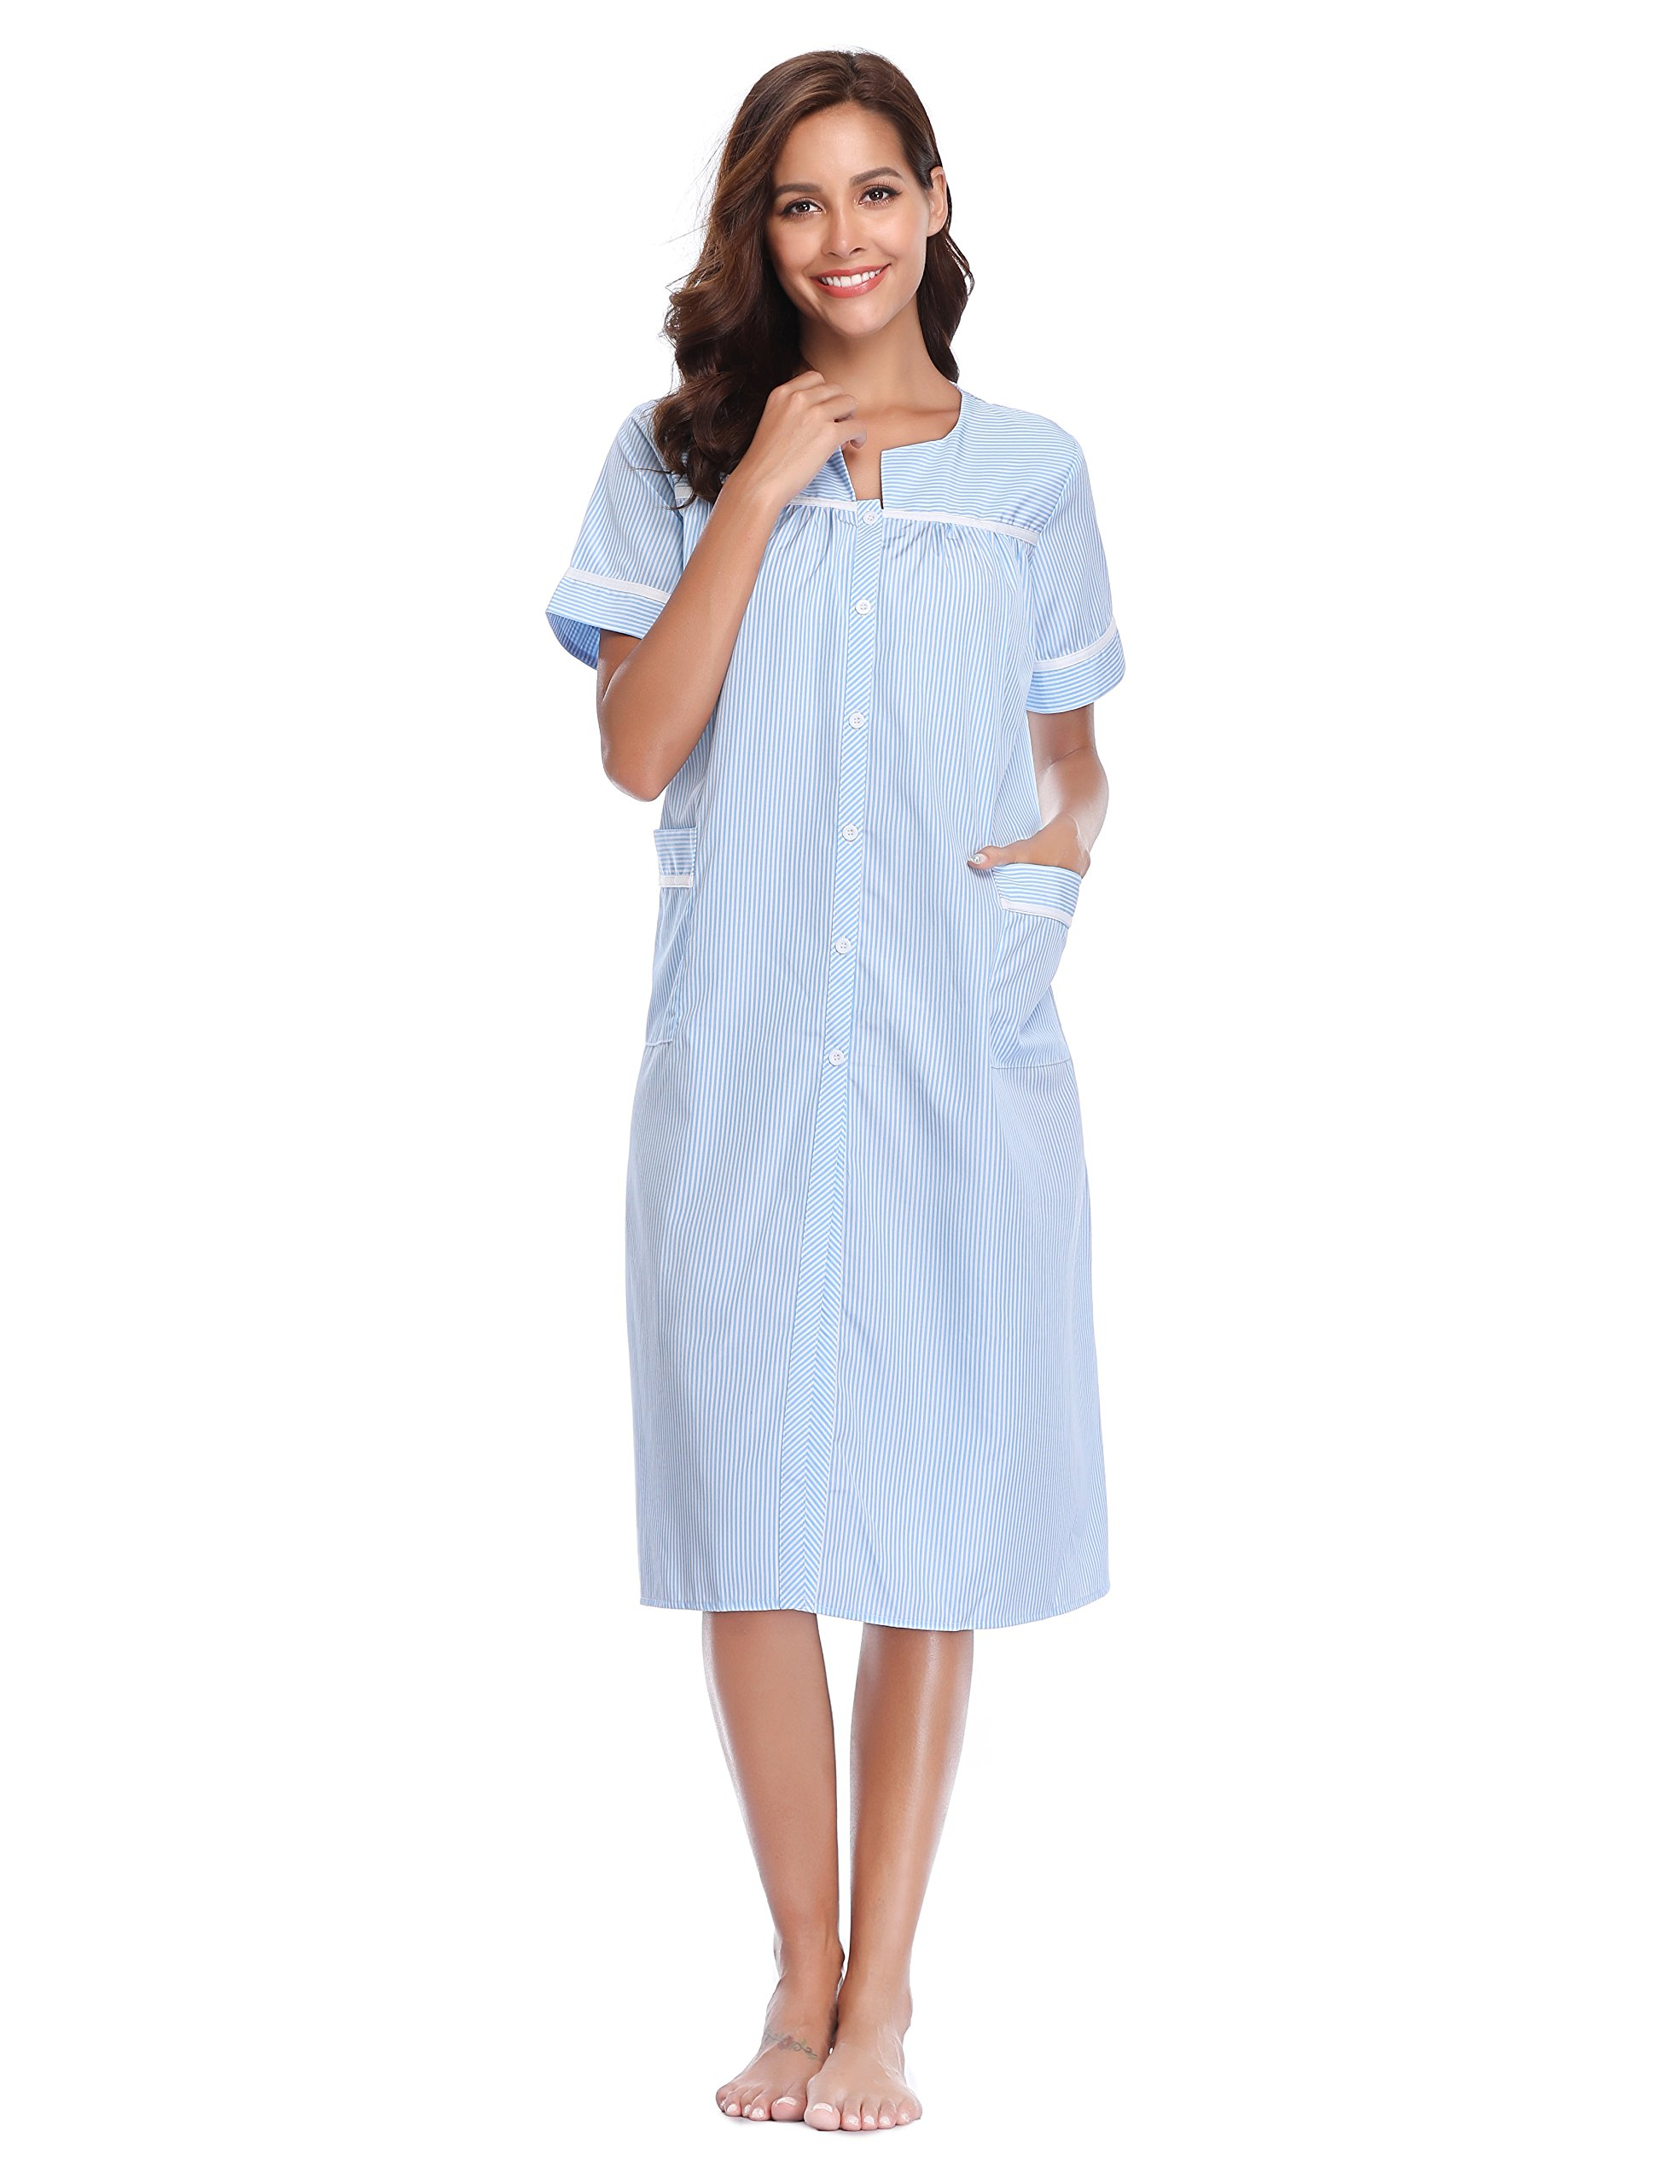 Lusofie House Dress for Women Short Sleeve Sleepwear Scoop-Neck Dusters Nightdress(Light Blue, L)